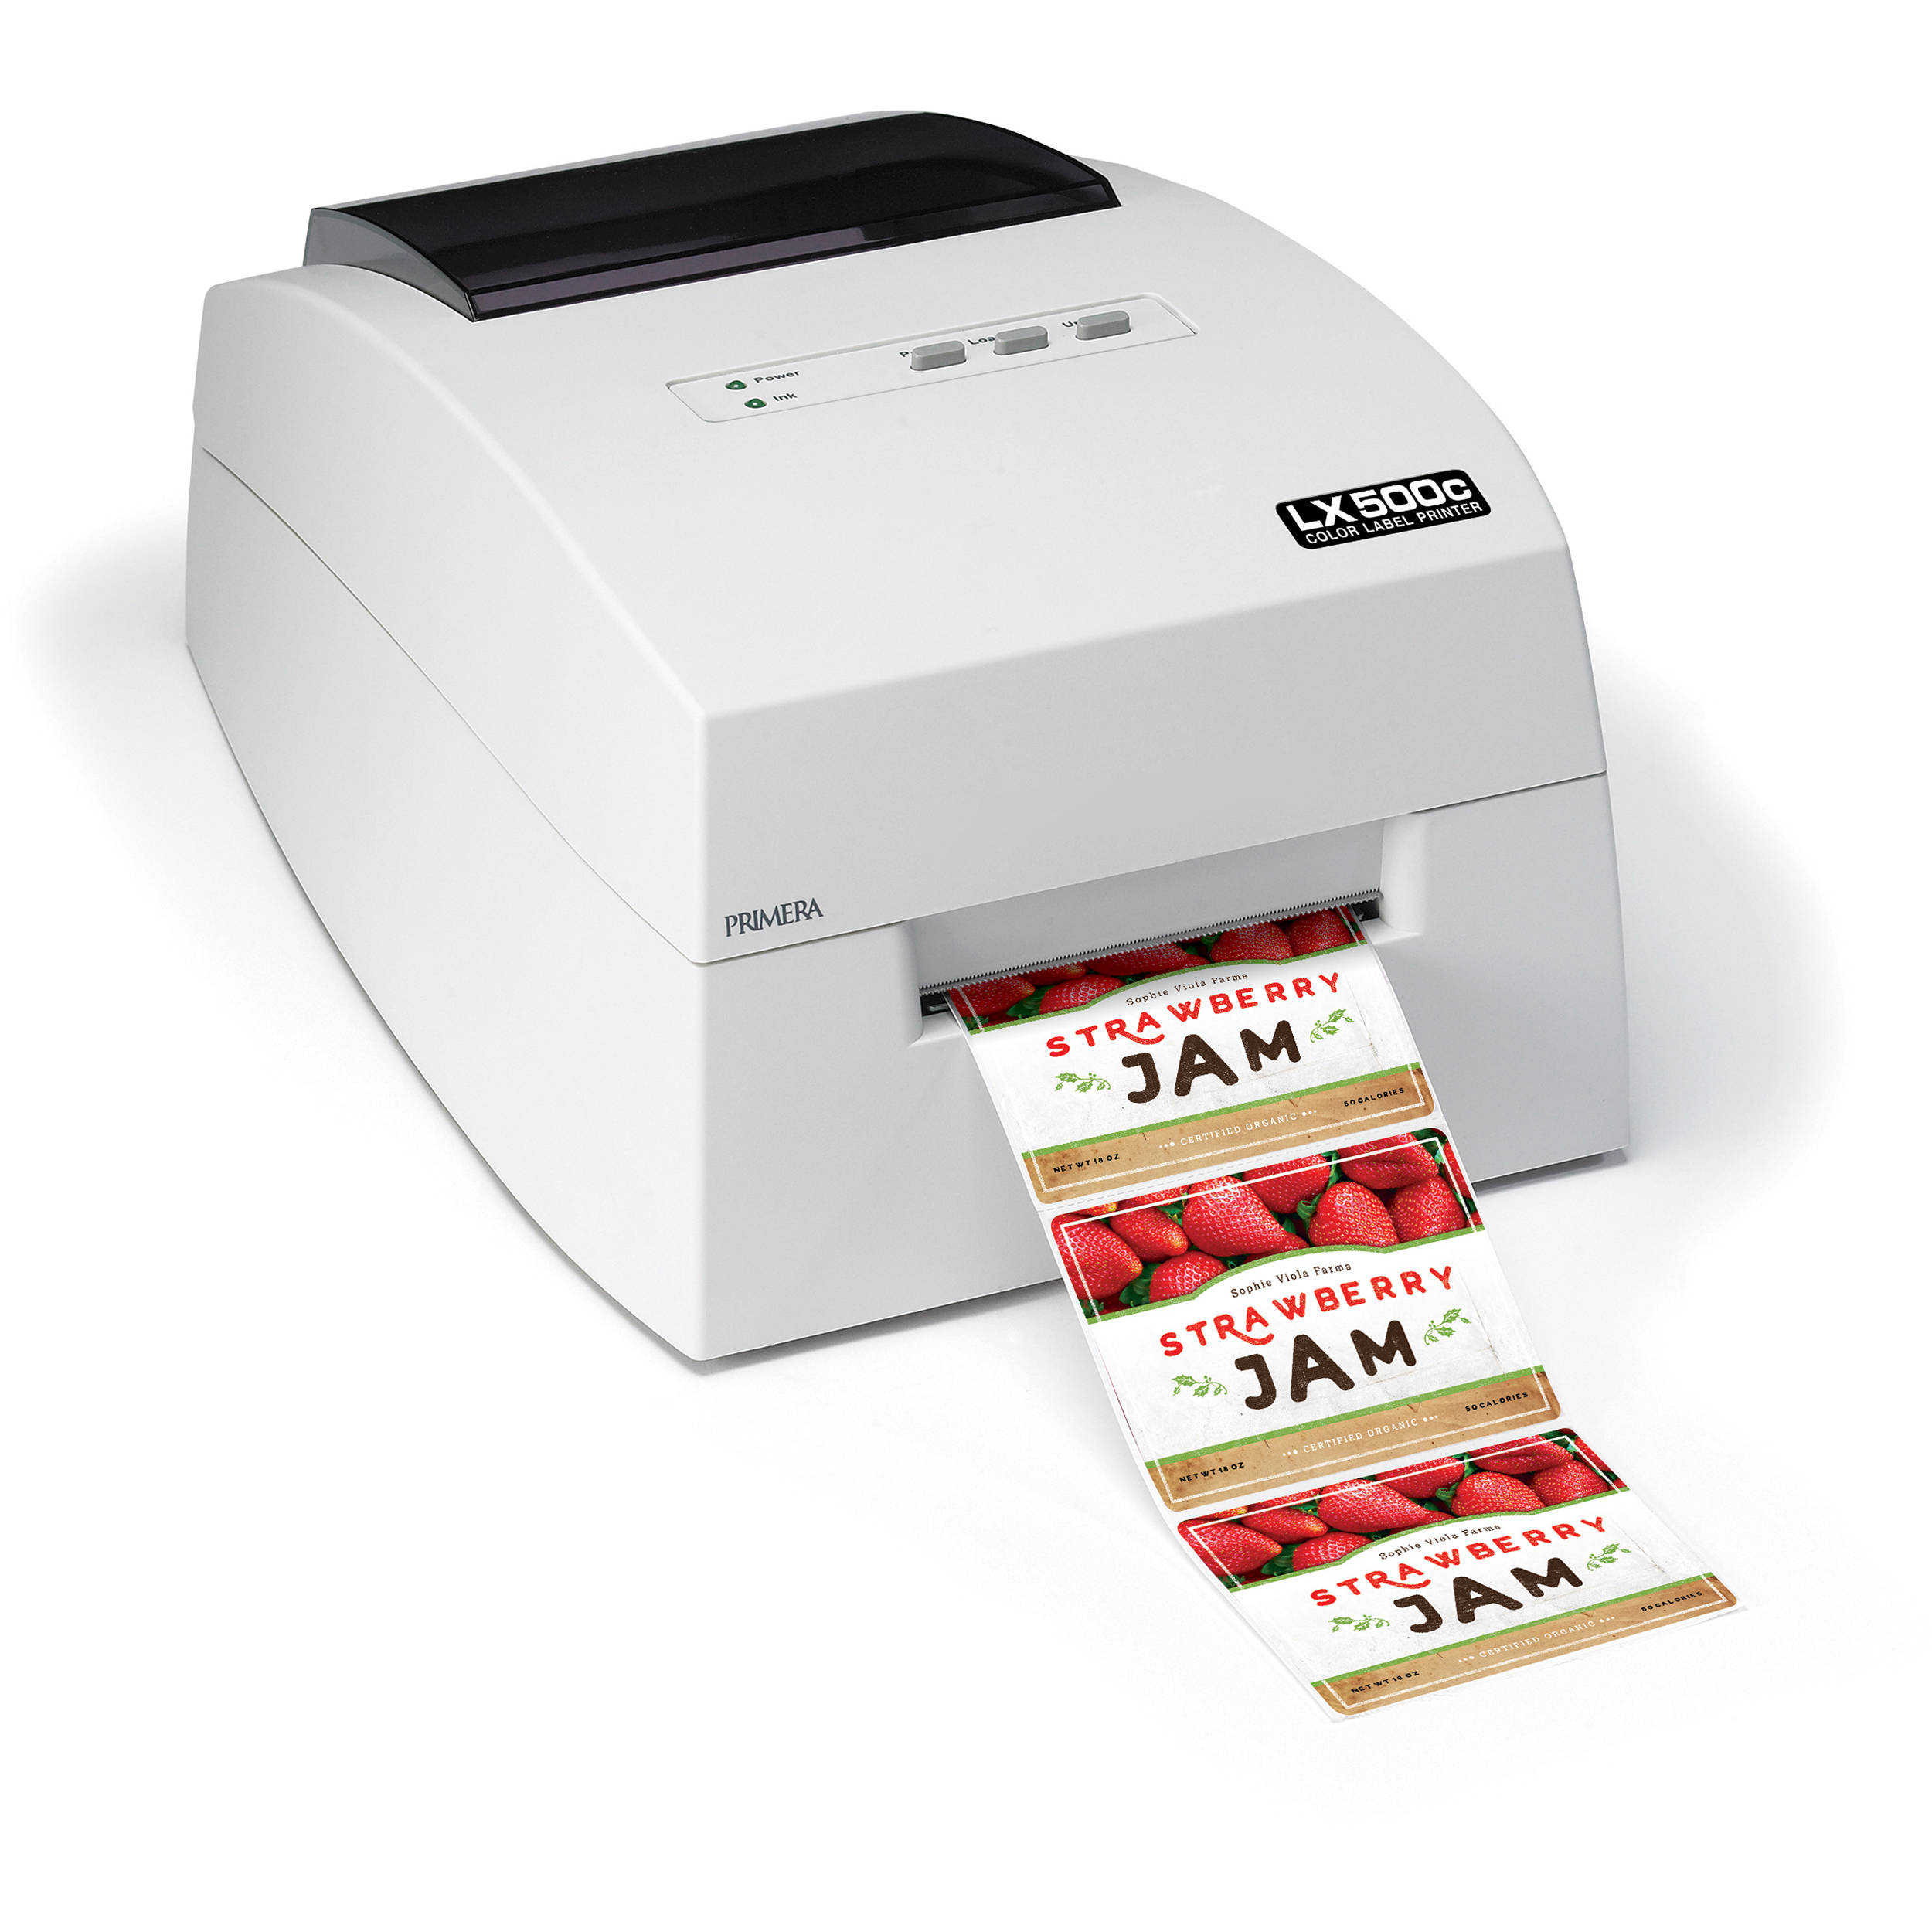 Primera LX500 Color Label Printer with Built-In Cutter ...